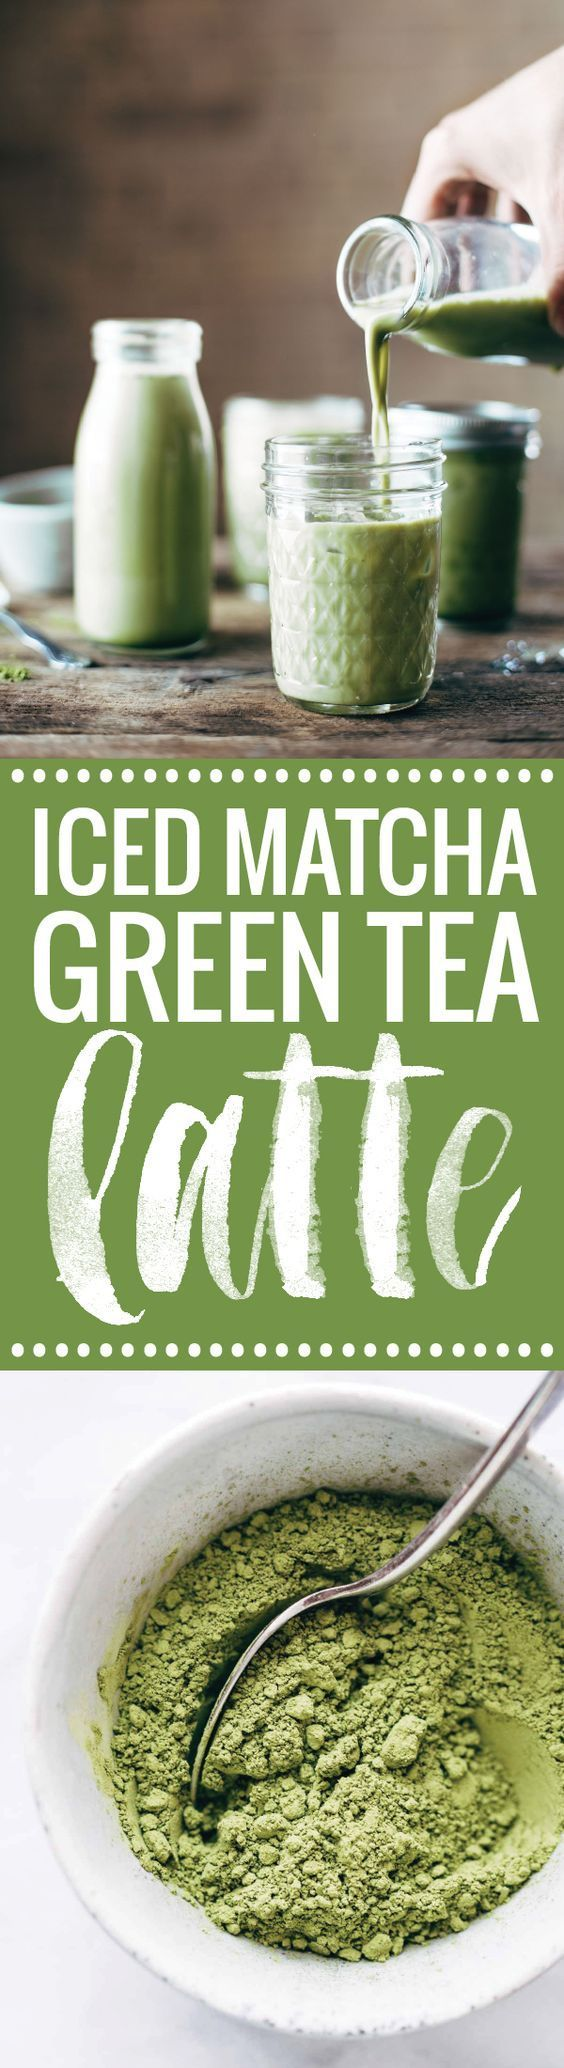 Iced Matcha Green Tea Latte - 3 ingredient perfection for summer! almond milk, honey or agave, and matcha powder. | http://pinchofyum.com